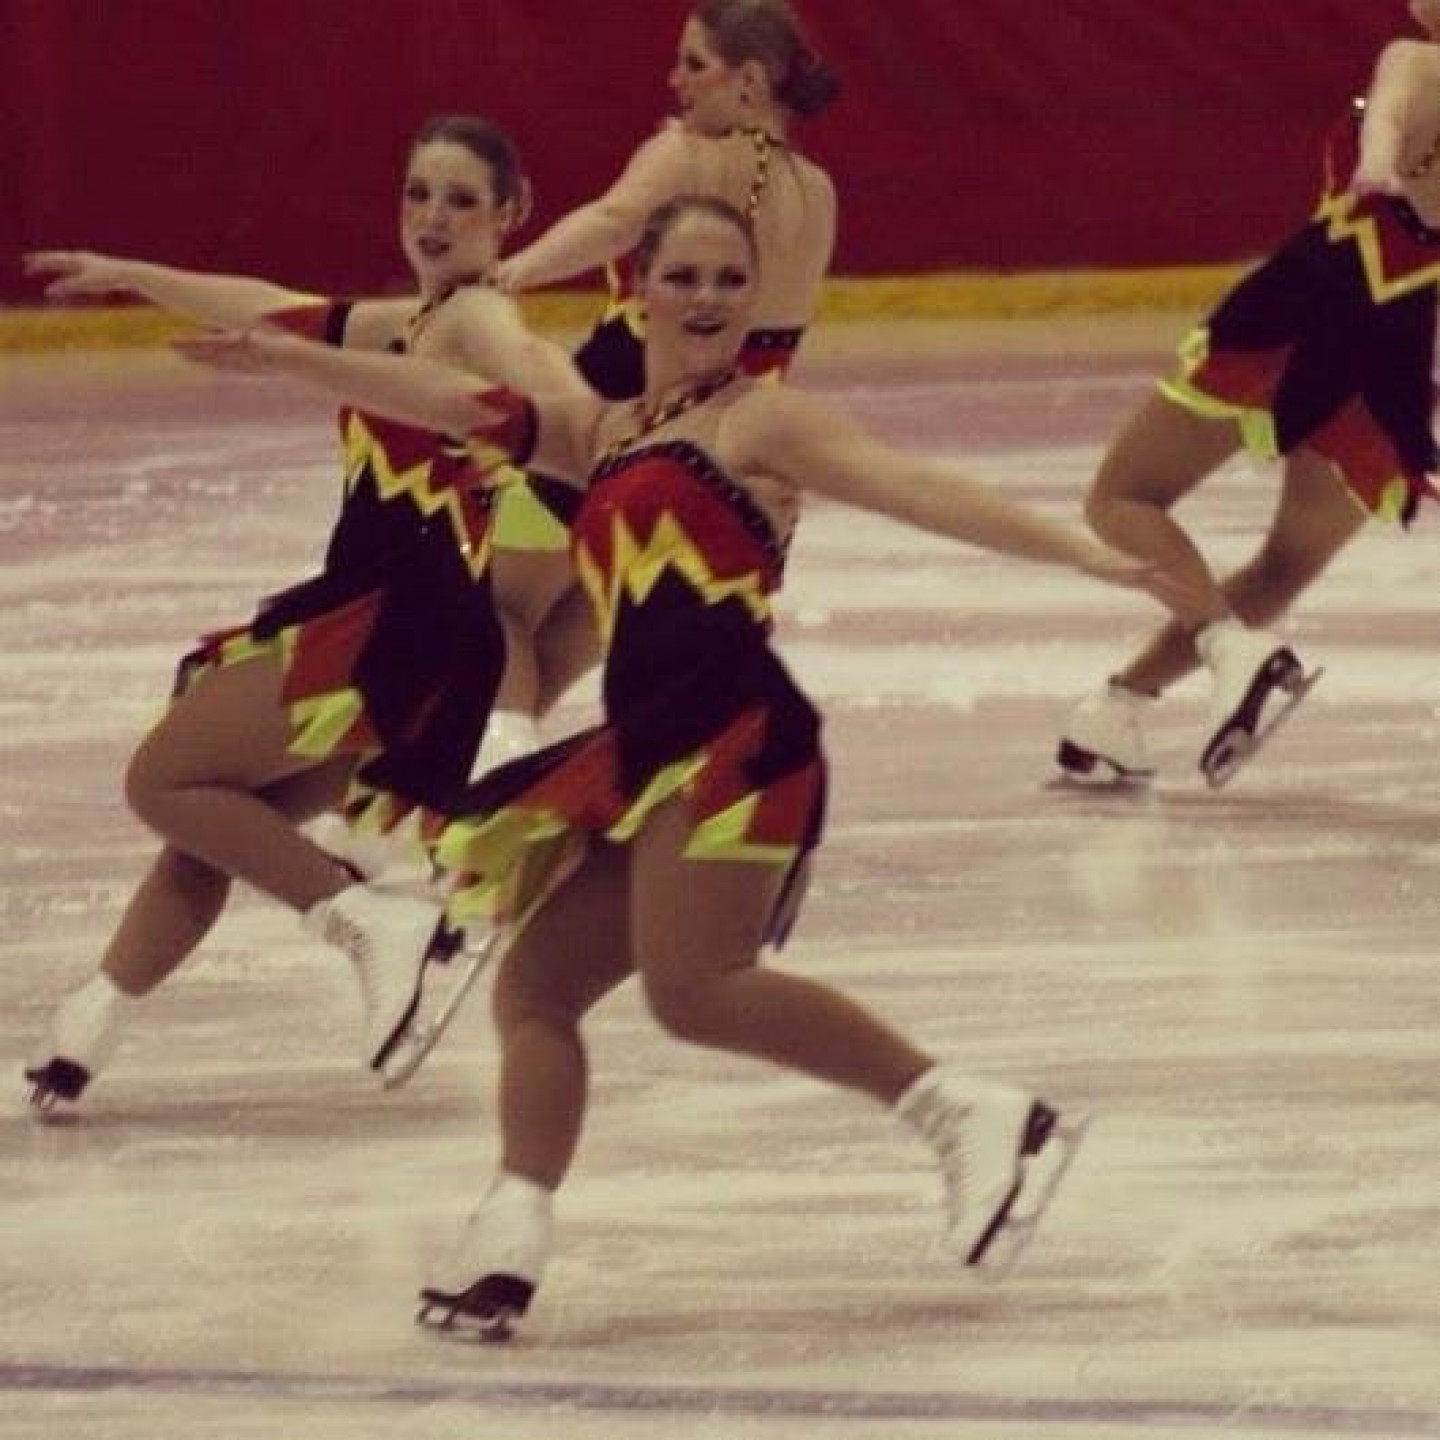 Emily Wheelright and her synchronized skating team on the ice.